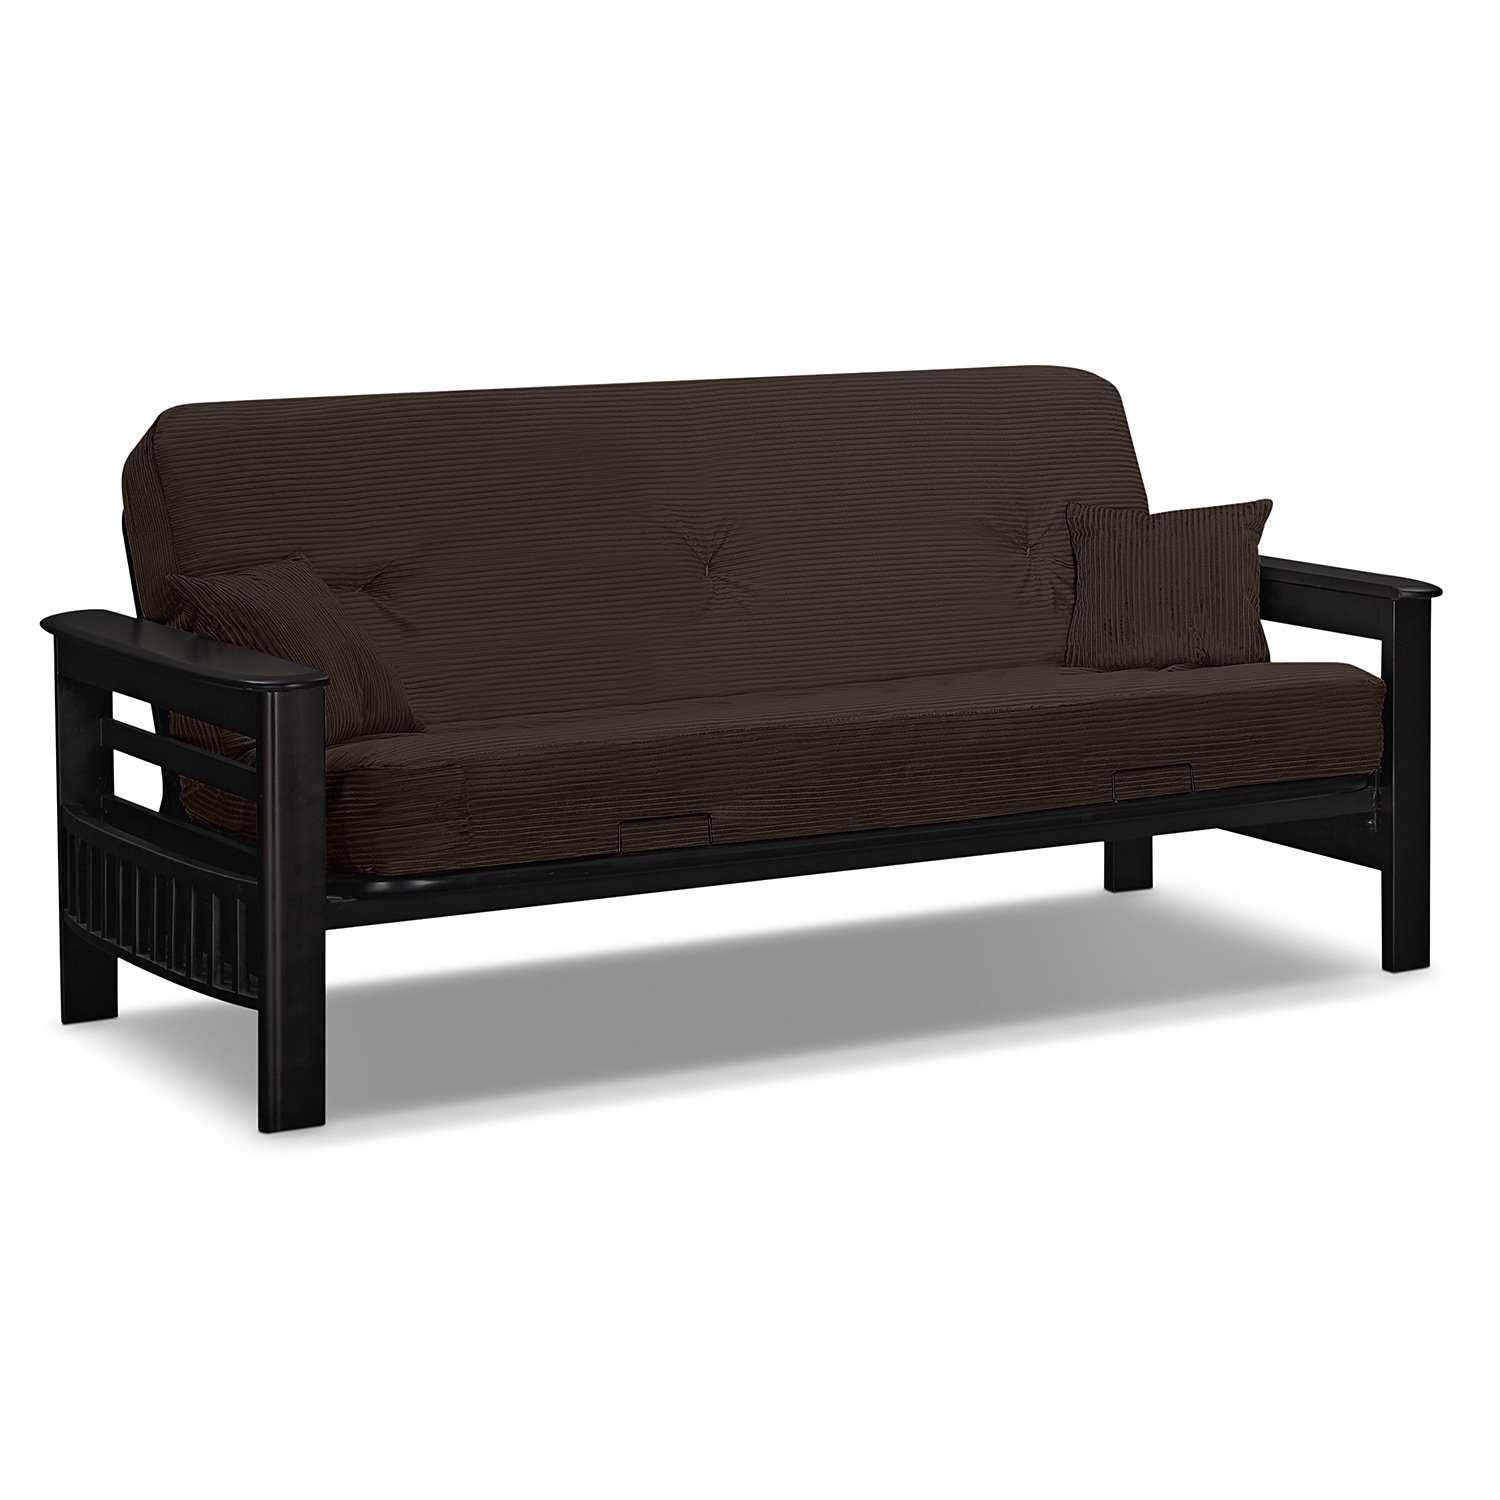 tampa futon sofa bed brown value city furniture. Black Bedroom Furniture Sets. Home Design Ideas